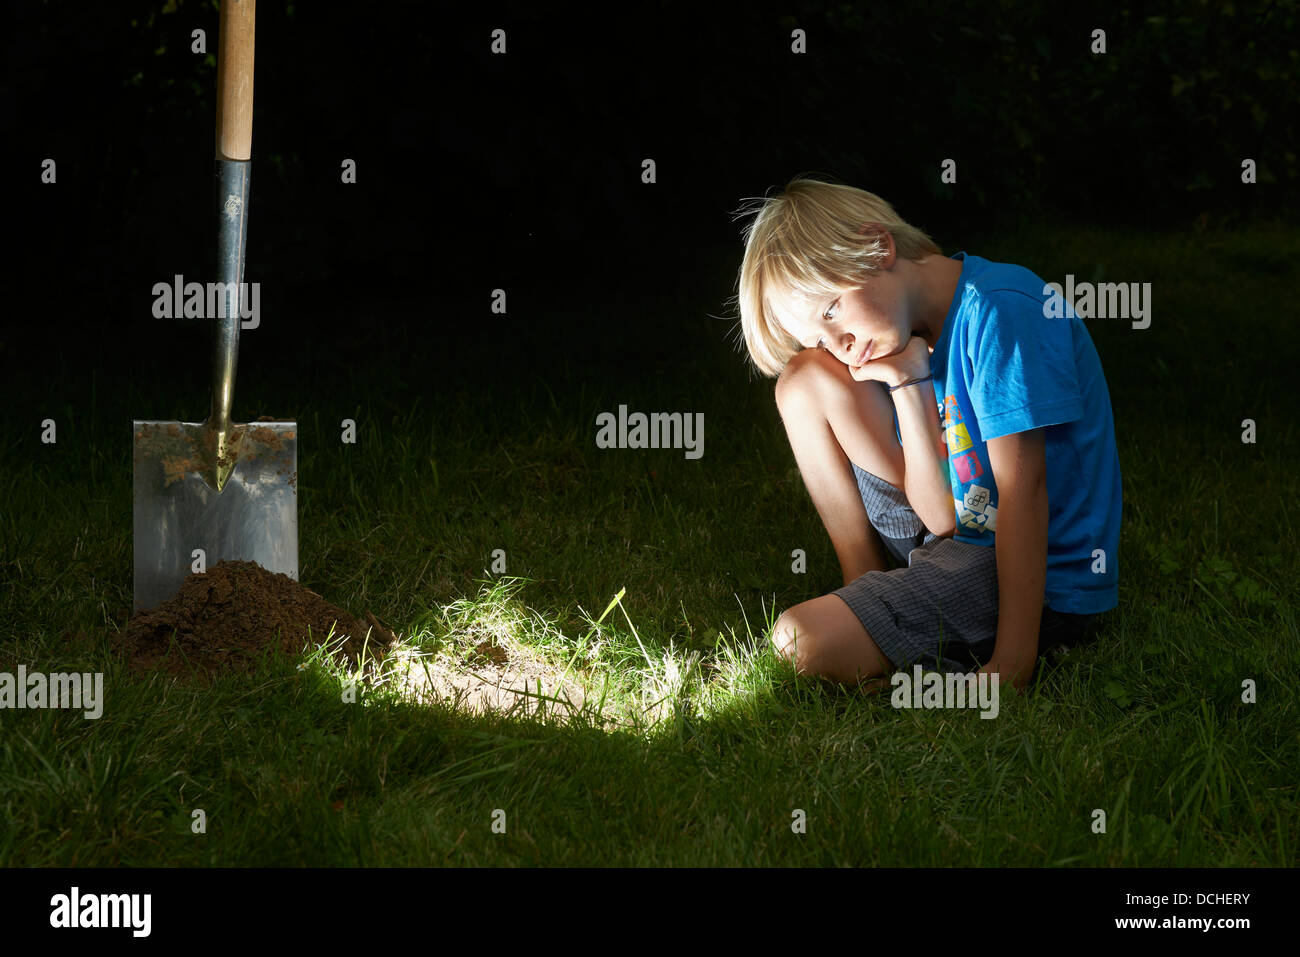 Child boy digging a treasure in magic hole in soil at dusk